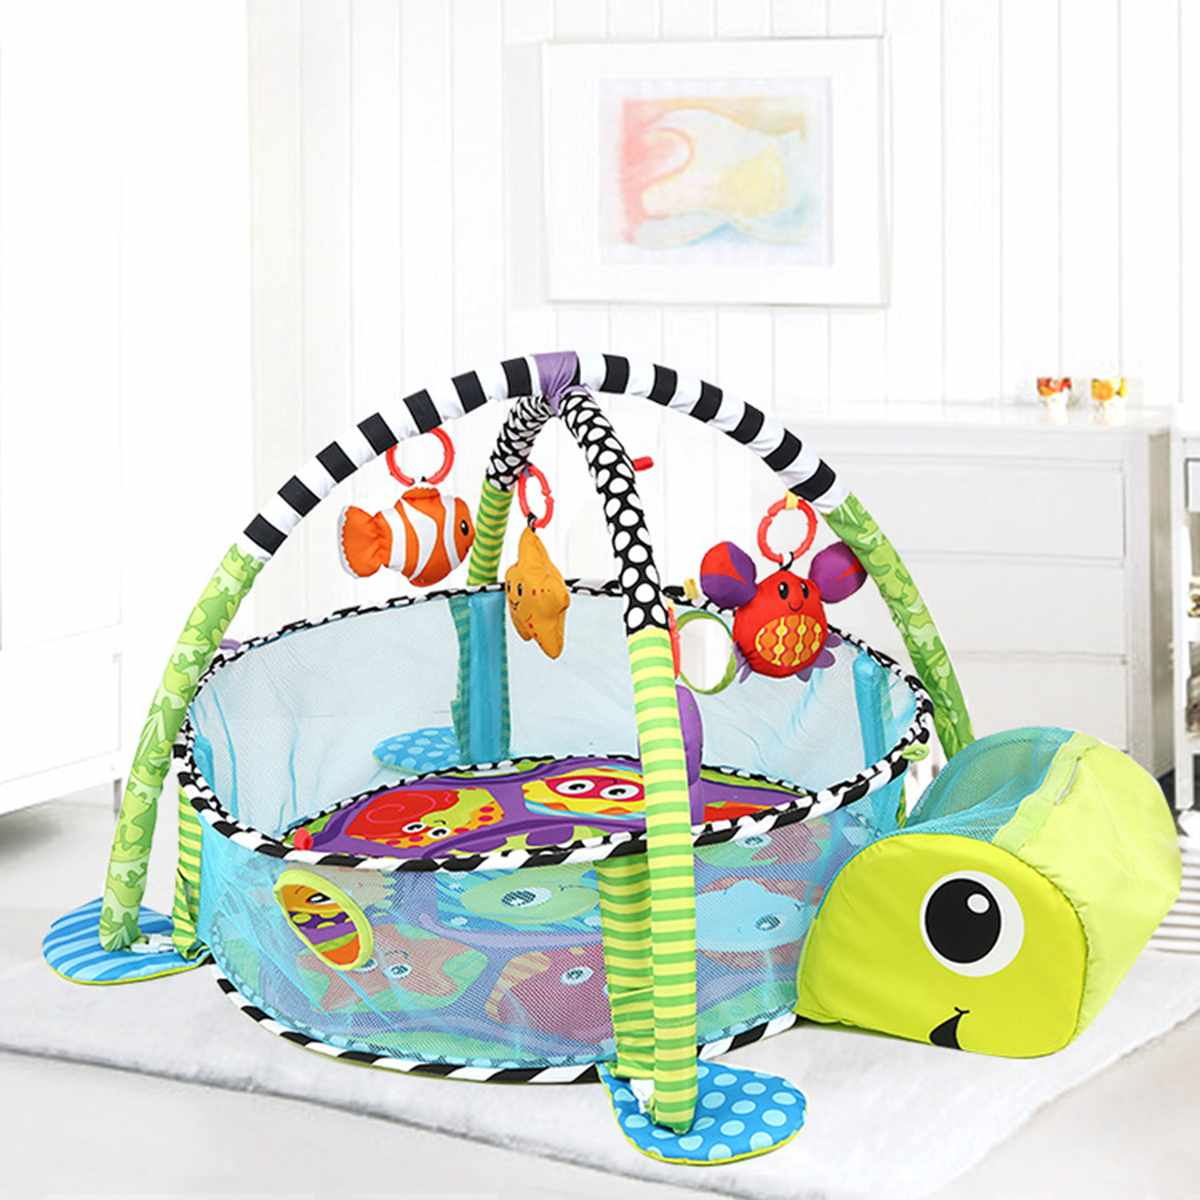 Turtle Baby Infant Play Mat Toddler Game Blanket Crawl Pad Game Mat Best Children's Lighting & Home Decor Online Store